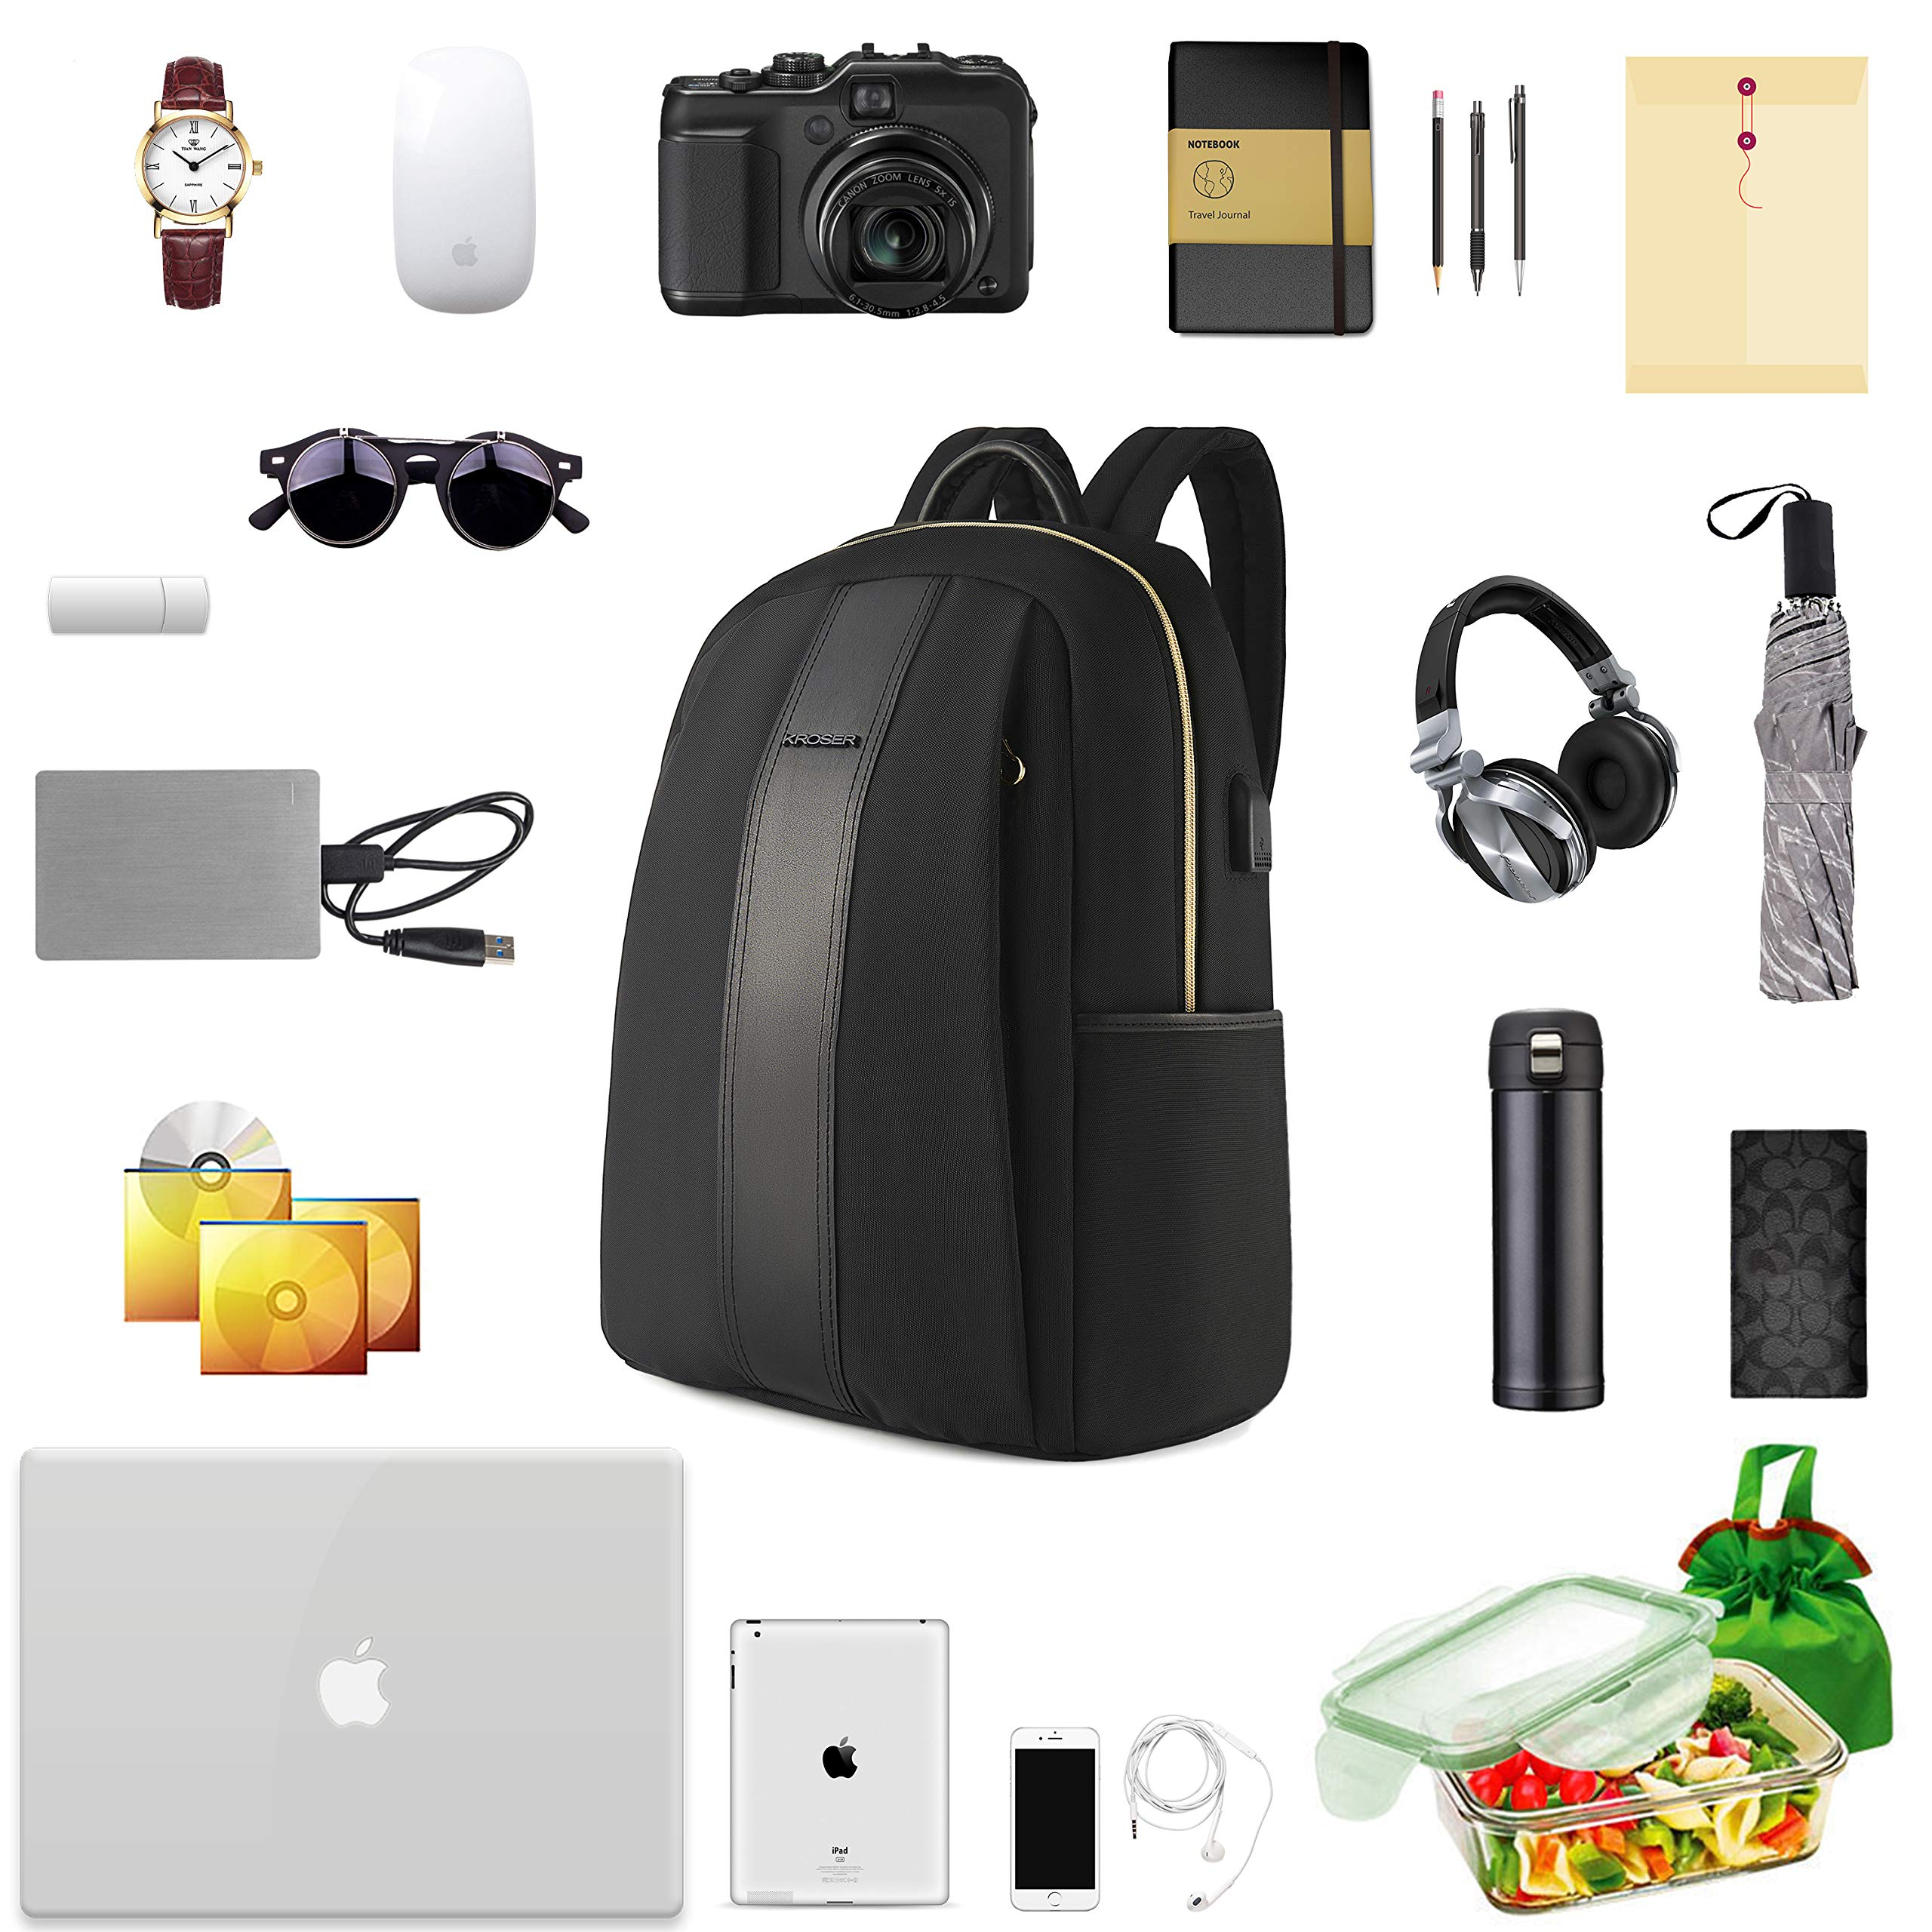 KROSER Laptop Backpack 15.6 Inch Fashion School Computer Backpack Water-Repellent Nylon Casual Daypack with USB Charging Port for Travel/Business/College/Women/Men-Black by KROSER (Image #7)